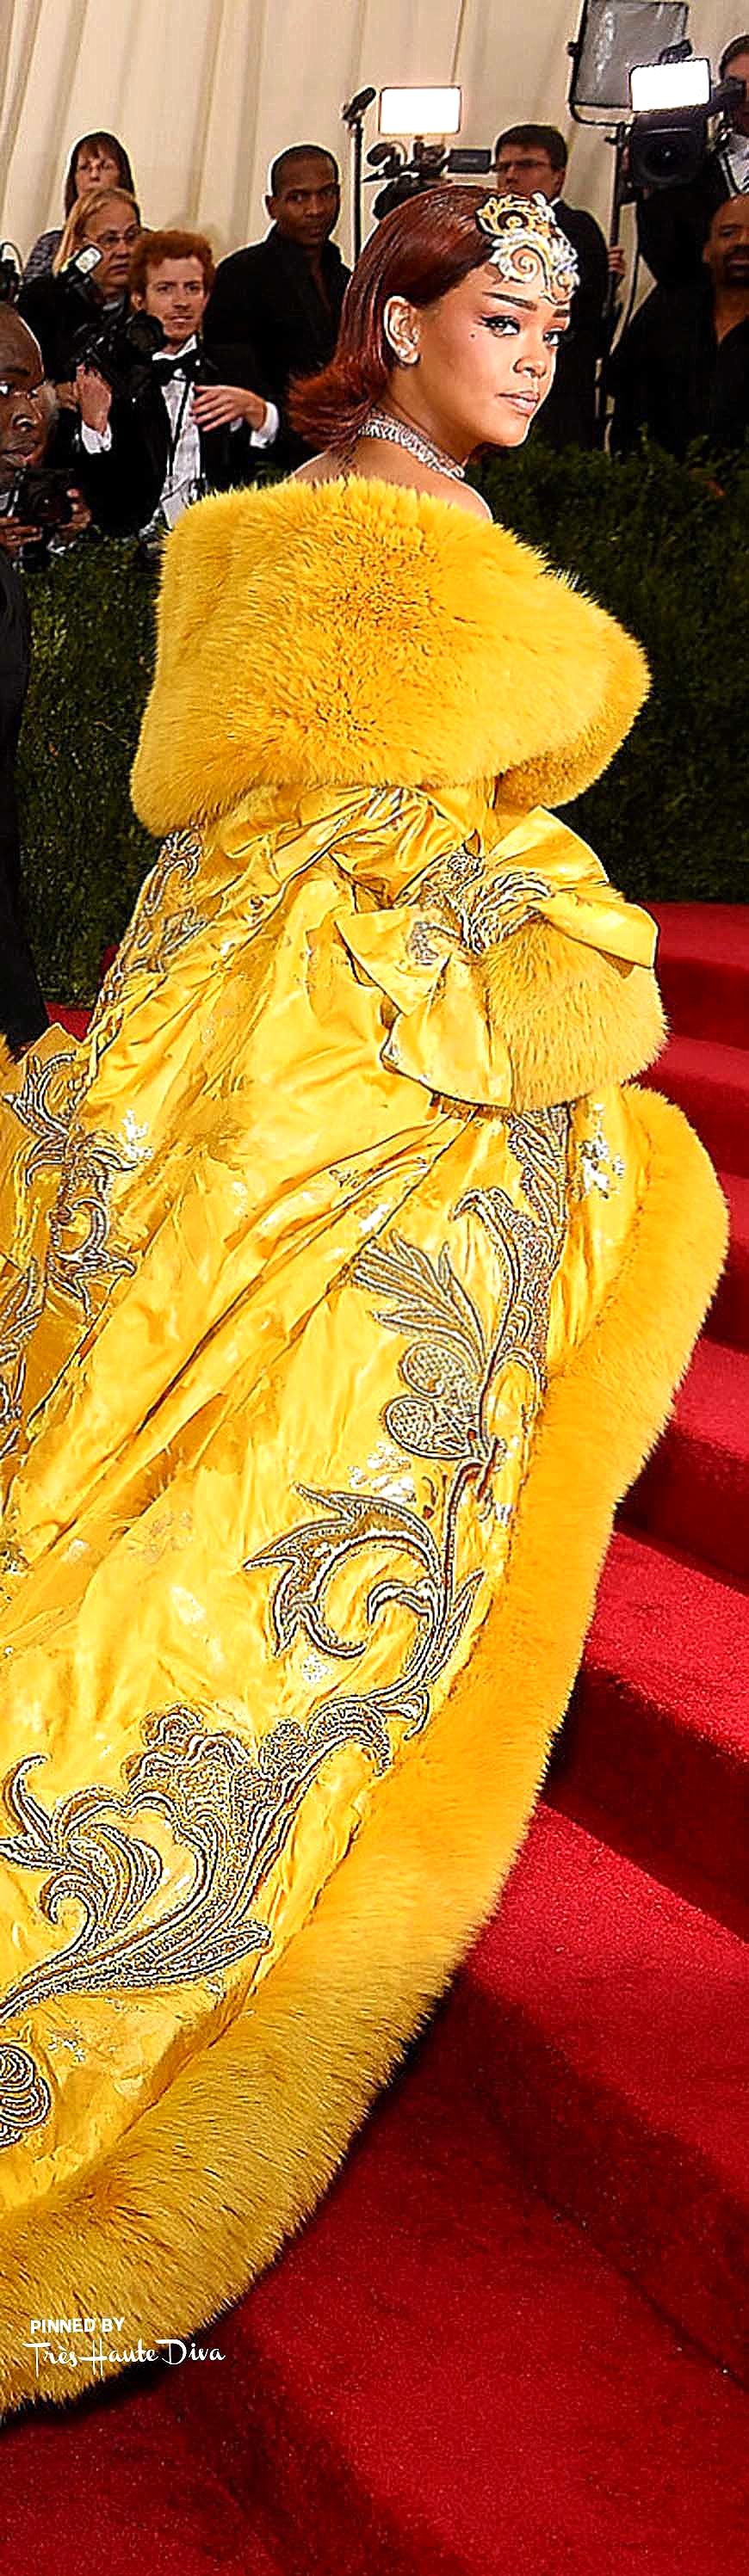 Rihanna in Guo Pei Couture            Getty Images/ Dimitrios Kambouris